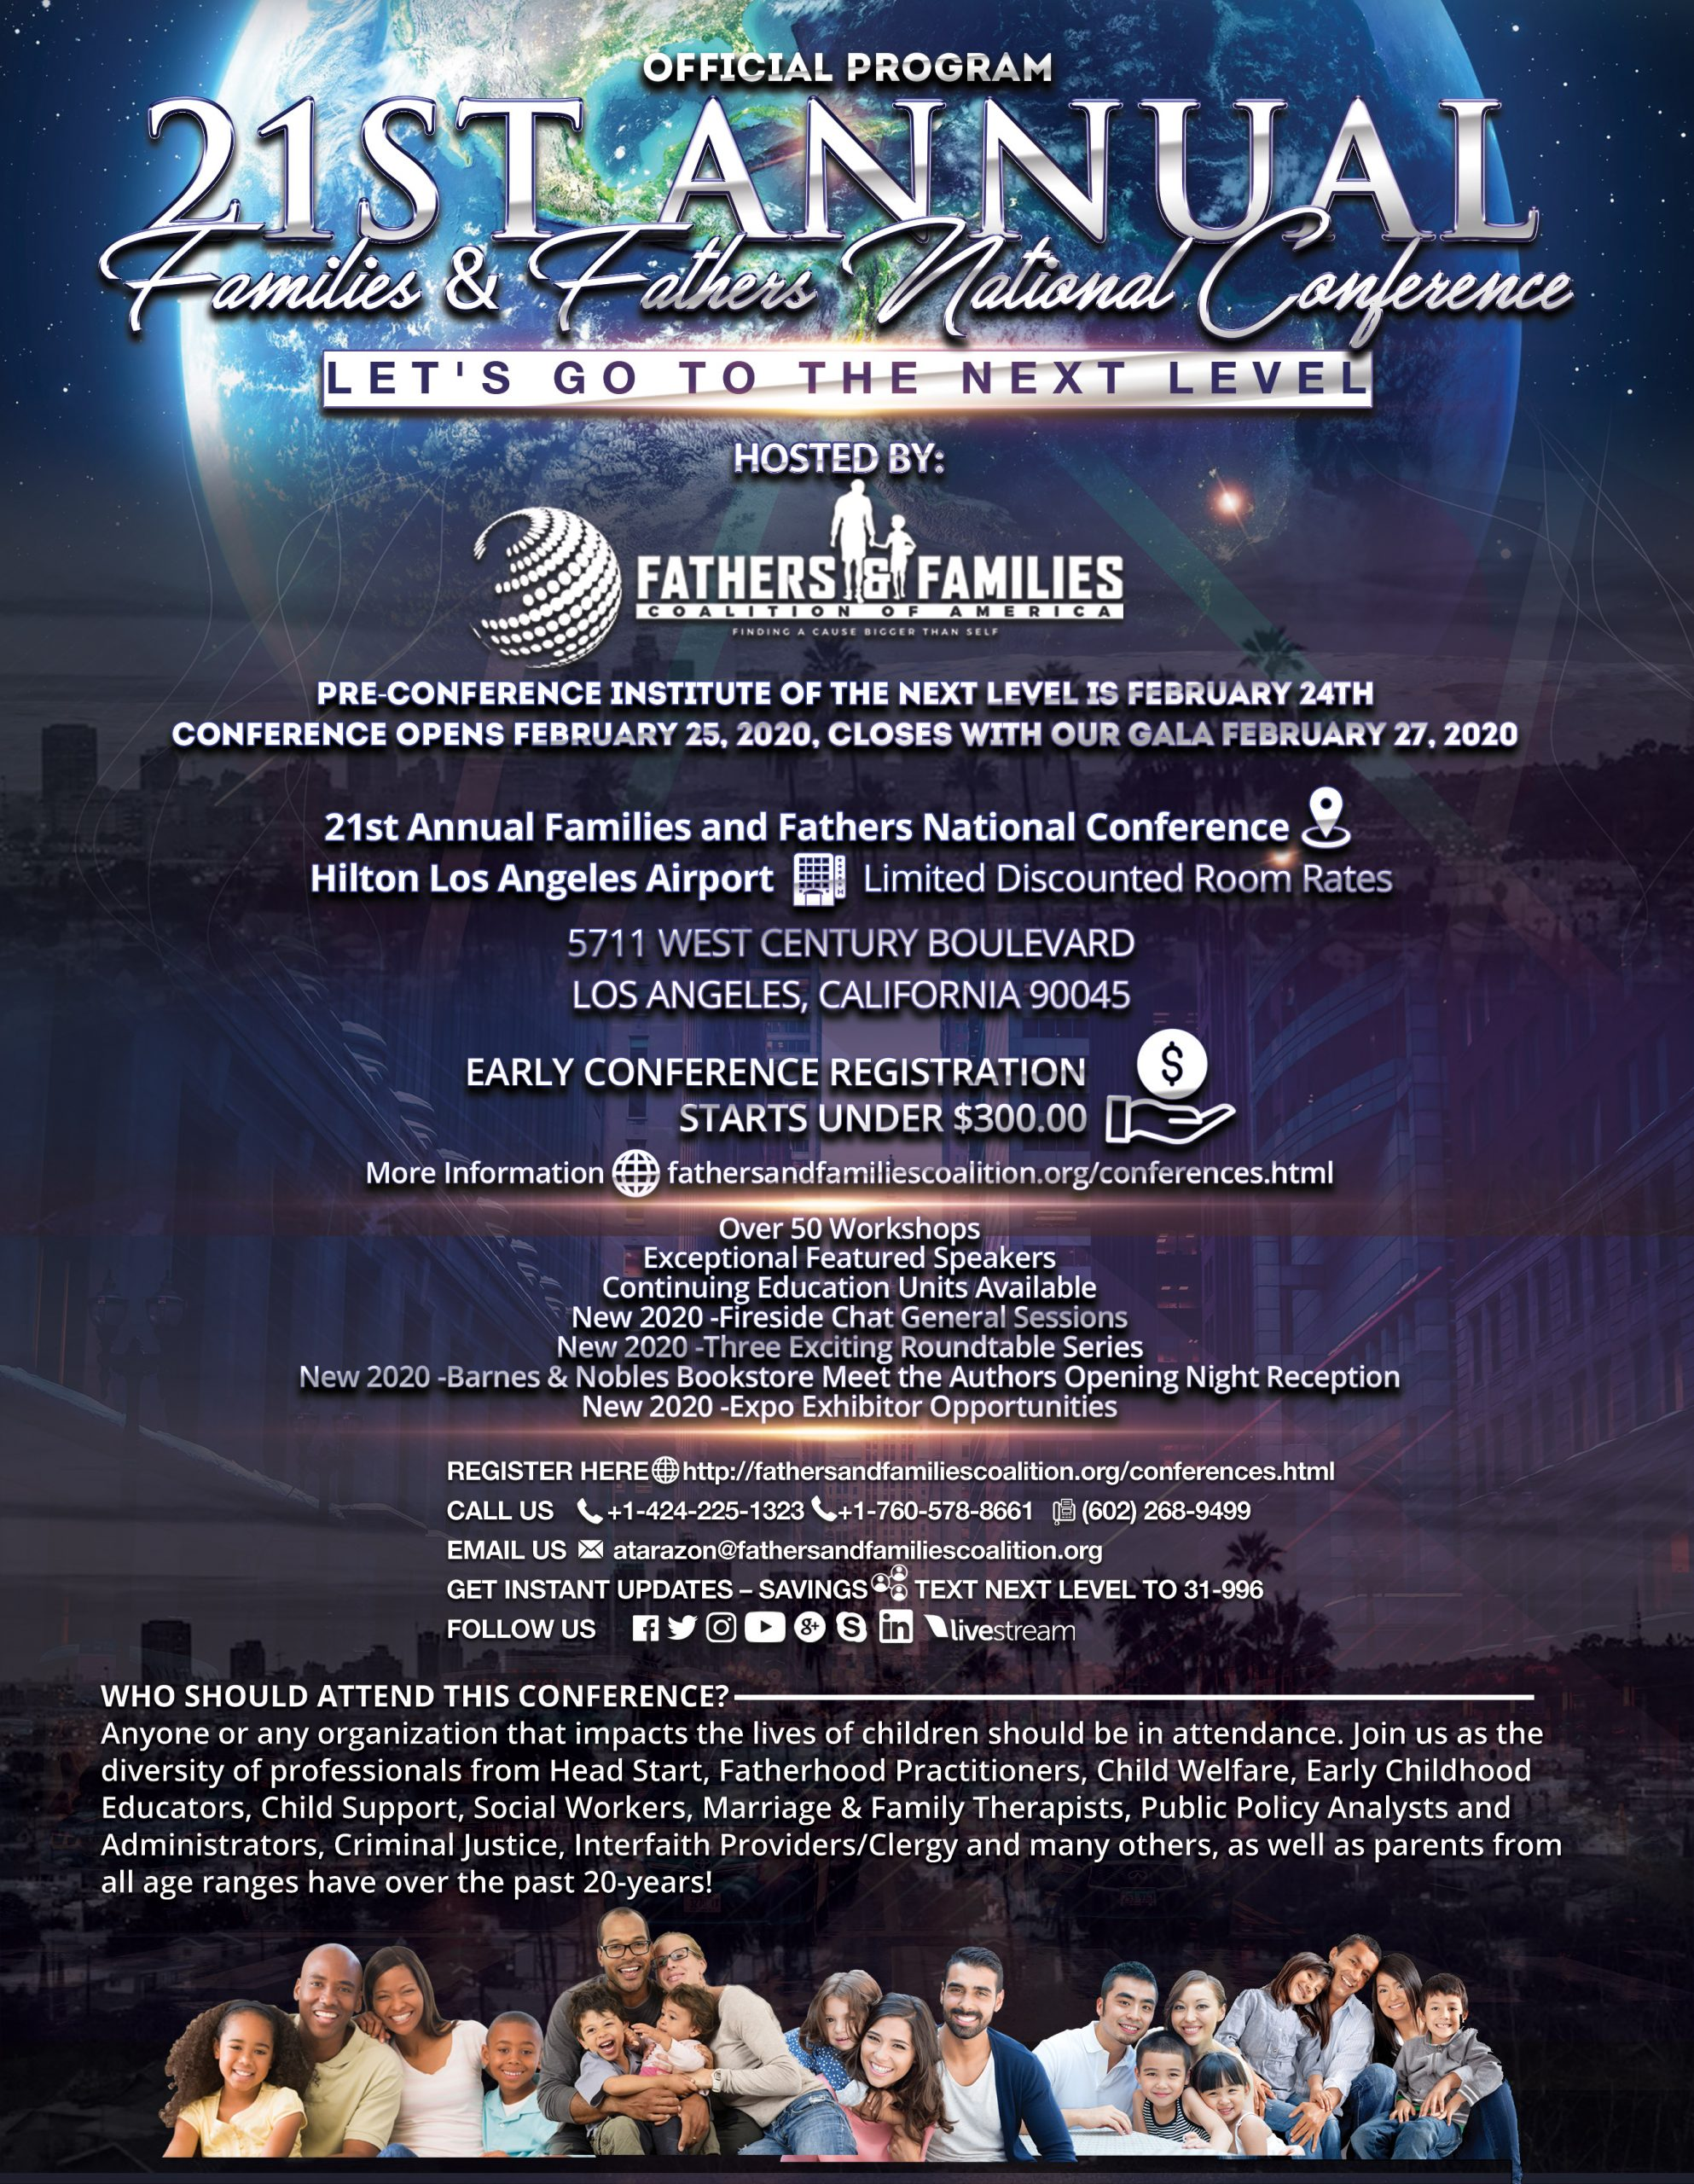 21st Annual Families and Fathers National Conference